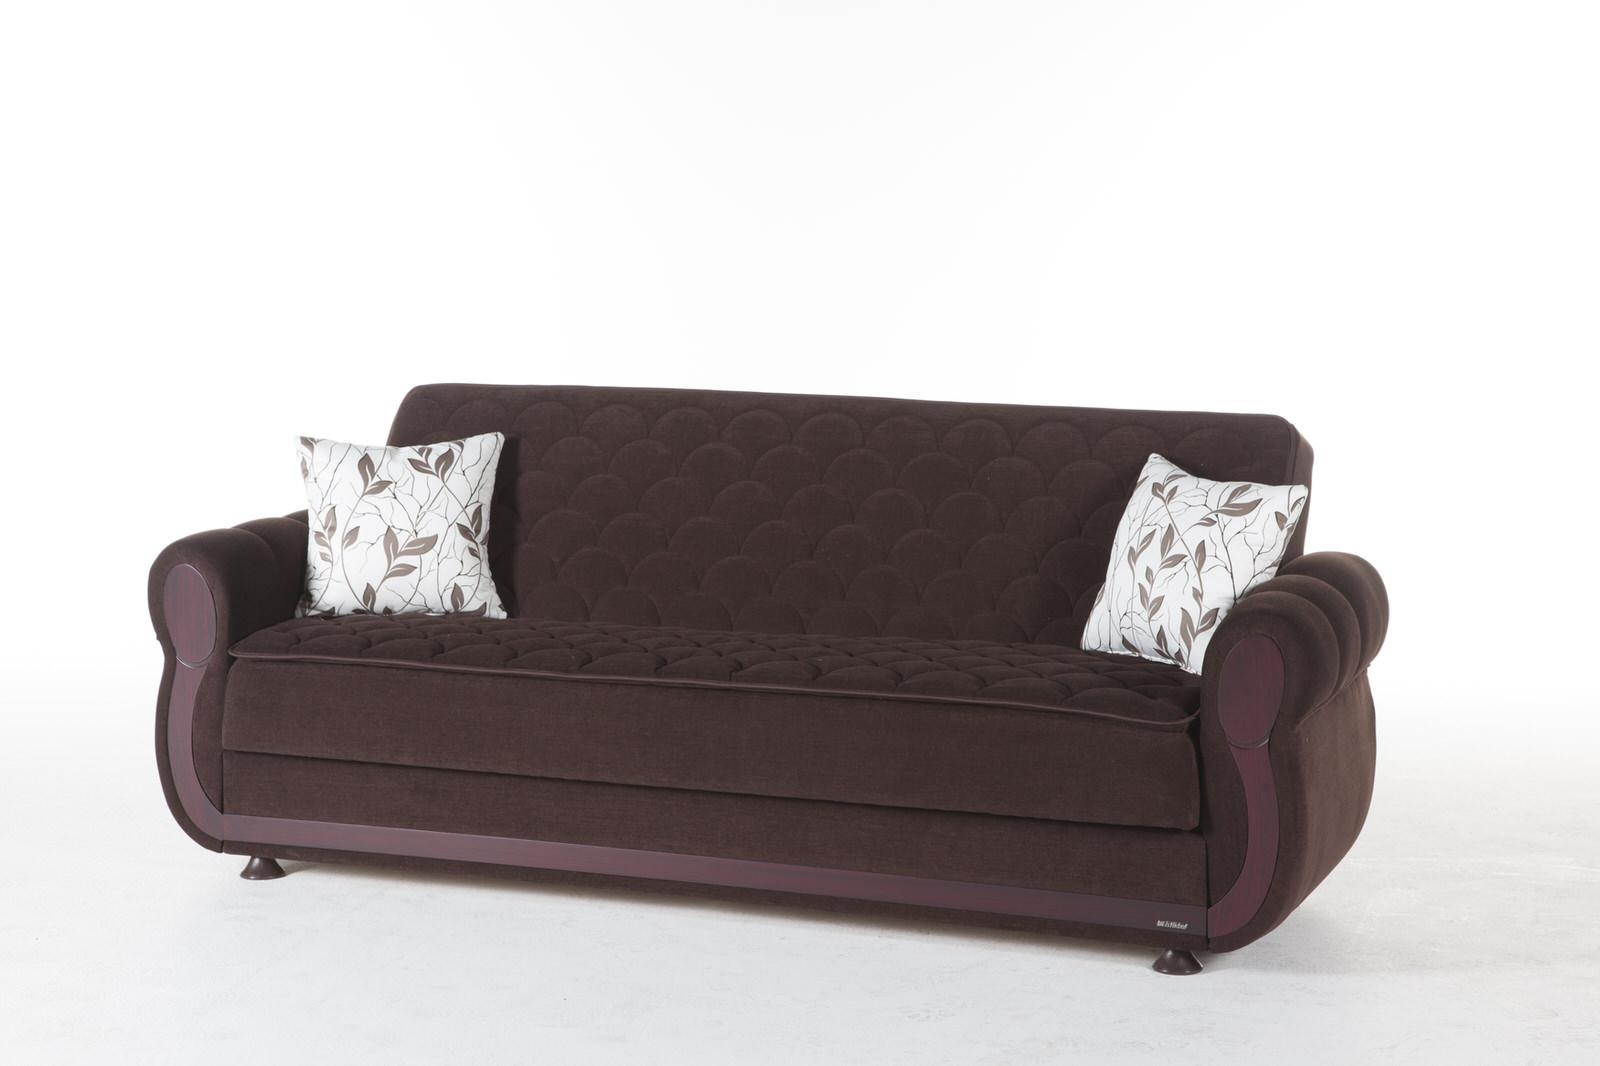 Argos Colins Brown Convertible Sofa Bedsunset In Convertible Sofa Chair Bed (Image 1 of 20)